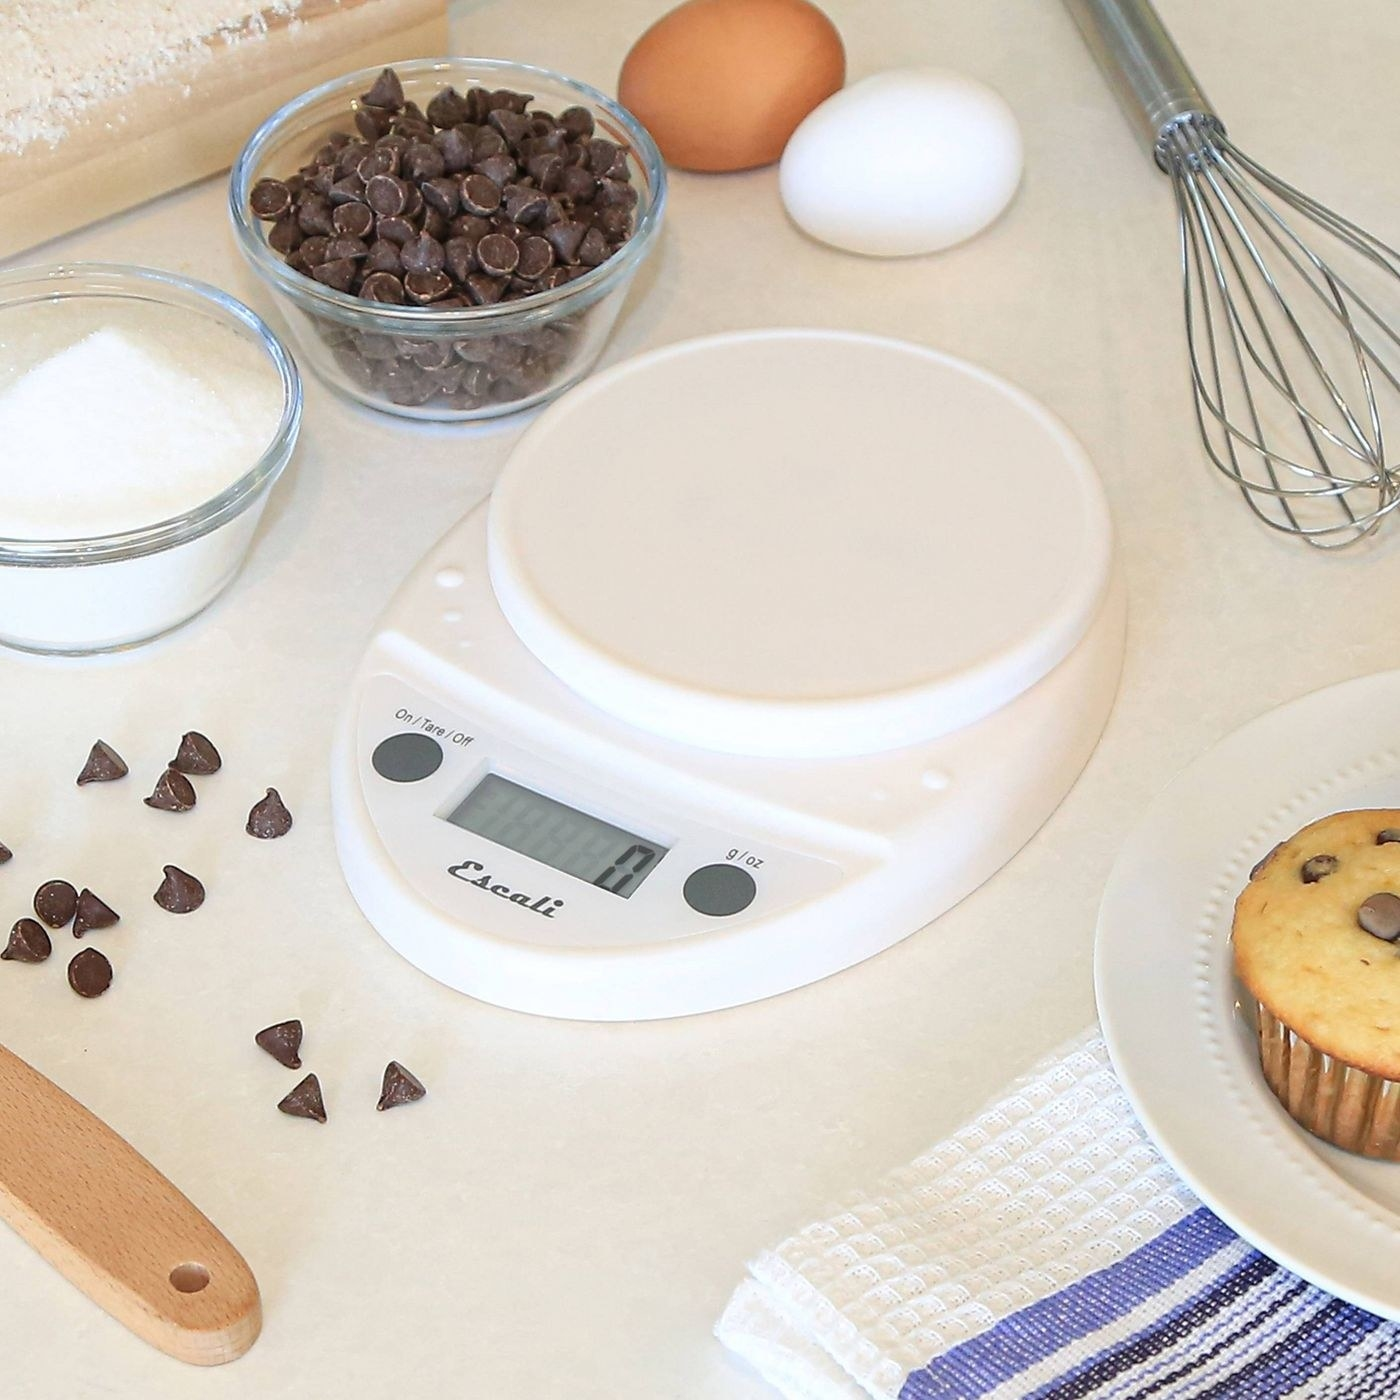 A white scale for cooking and baking